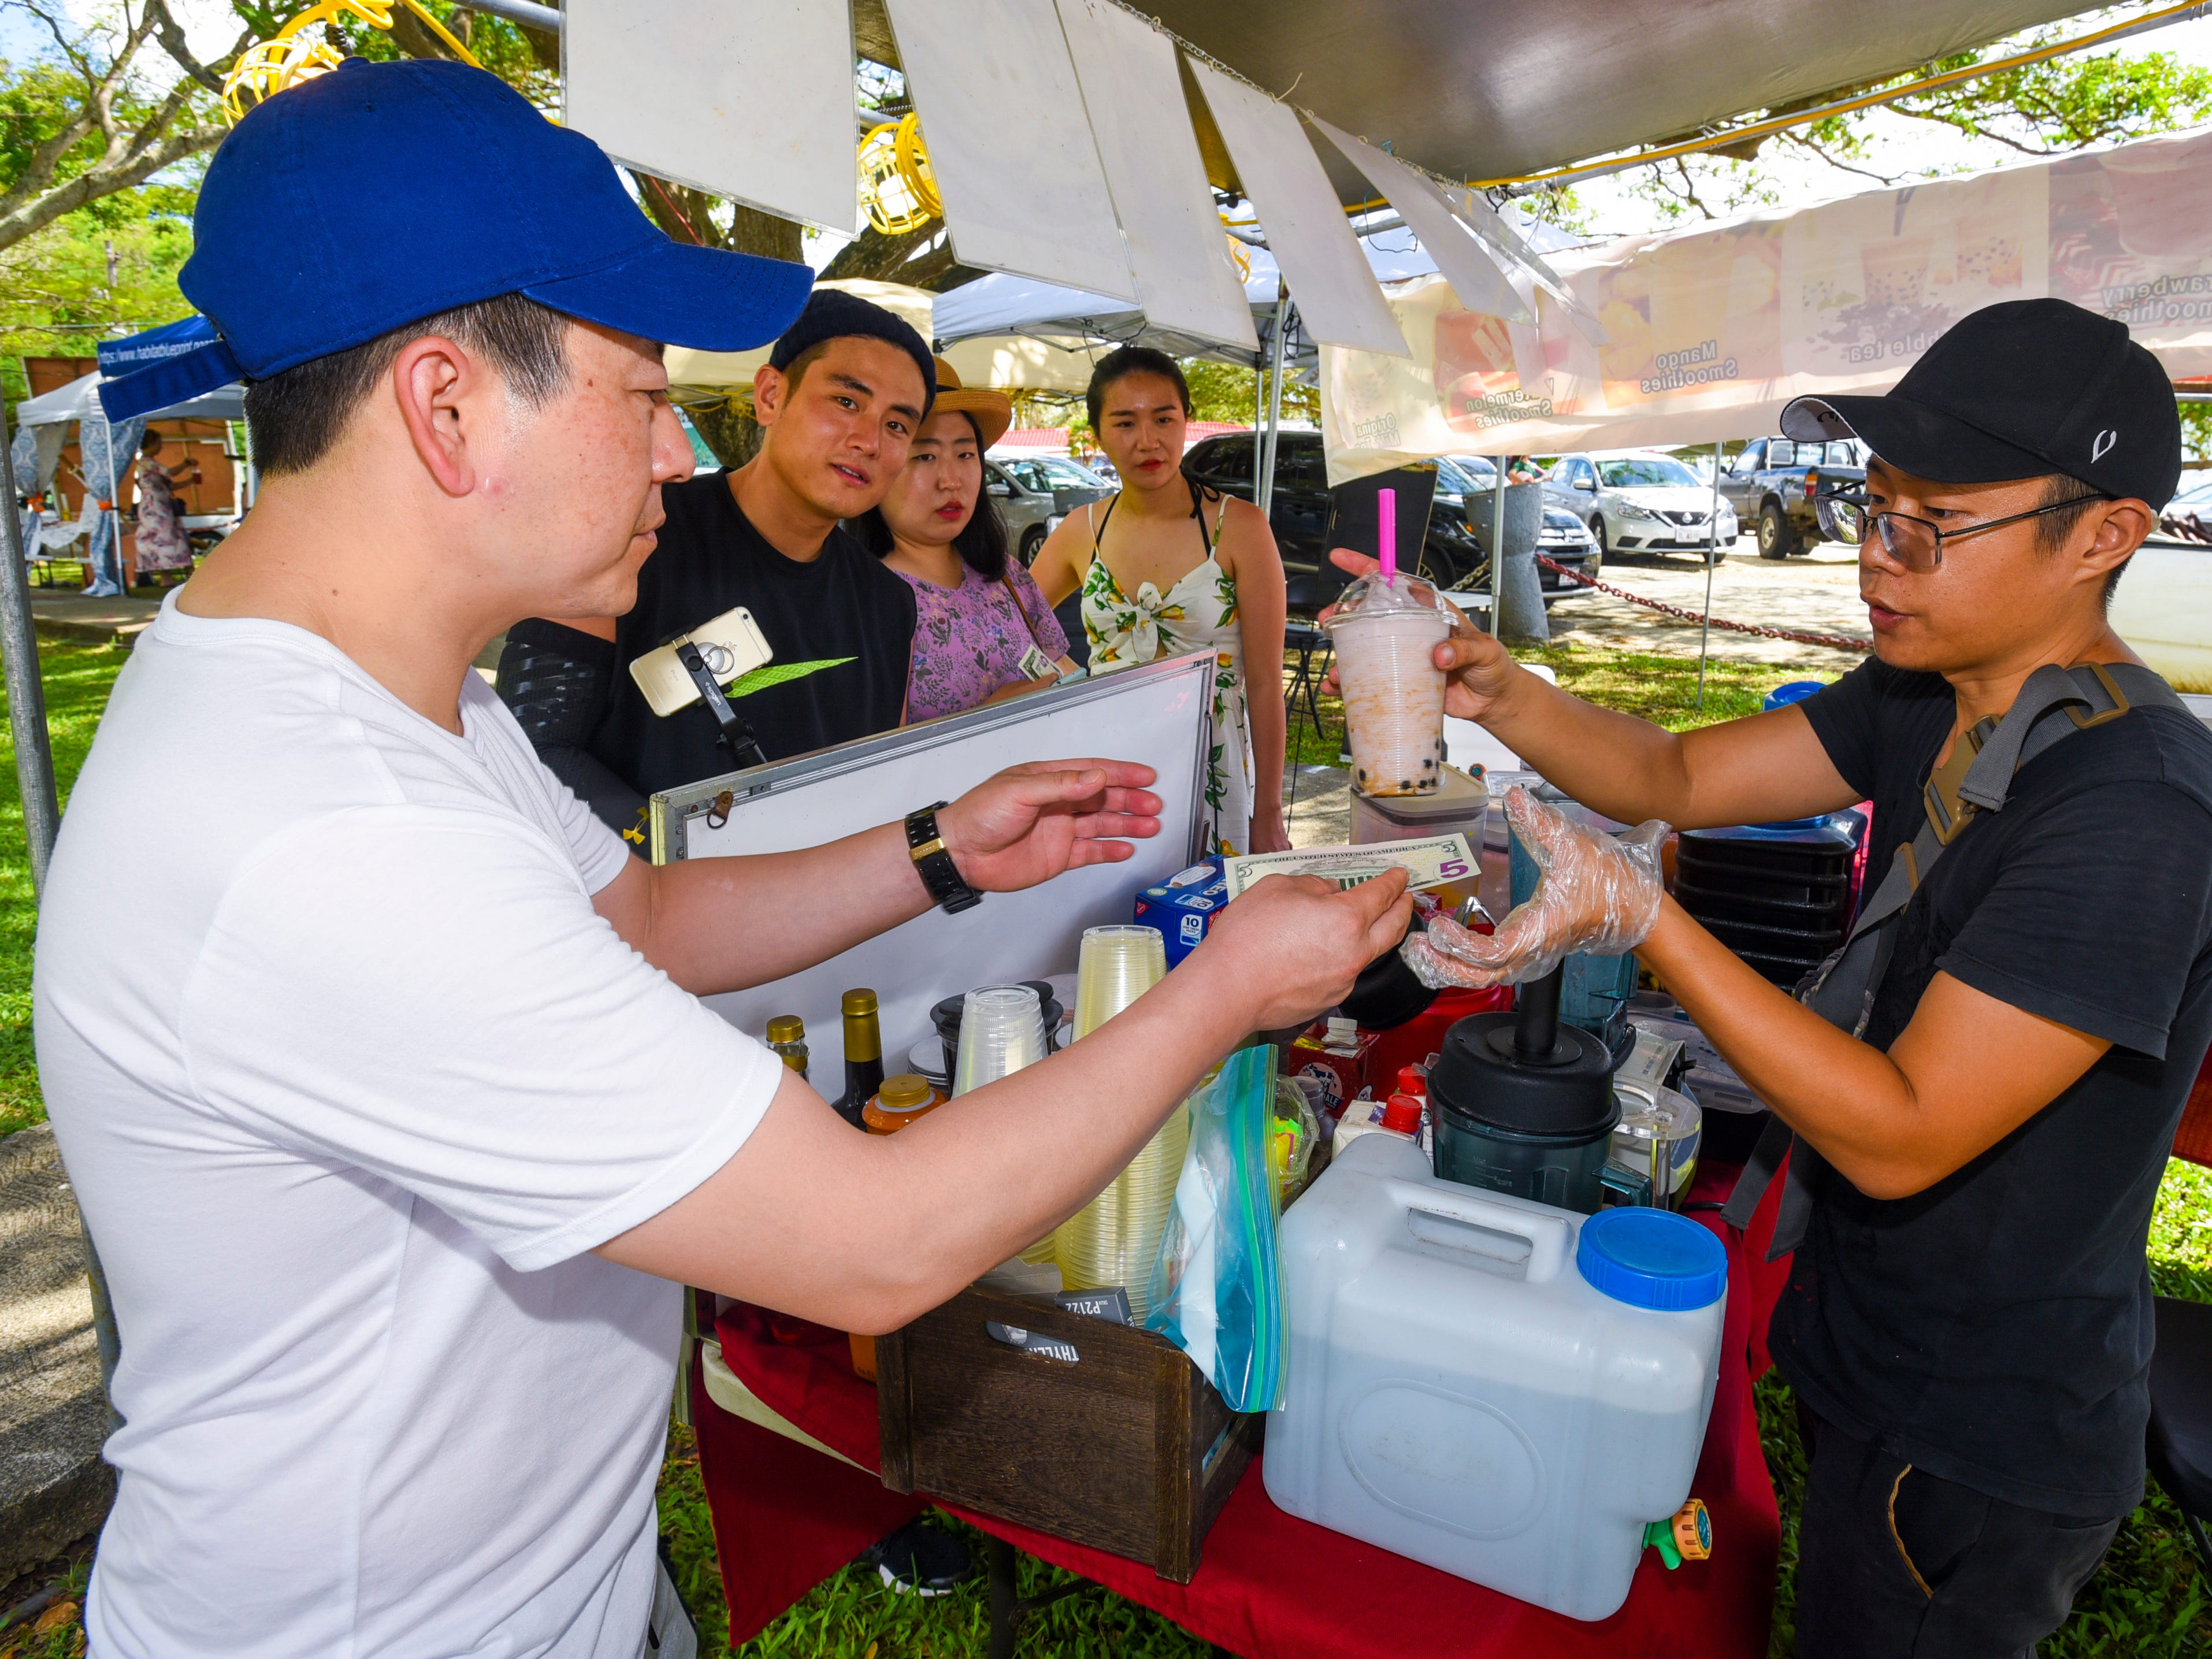 Yang Li, right, of the Momo's Cafe vendor stall, serves a chillin' taro smoothie to a customer during the annual Malesso Fiestan Tasi on Saturday, Dec. 1, 2018 at the Malesso Veteran Sons & Daughters Pier Park. The village festival is slated to continue on Sunday, Dec. 2, with plans of a spearfishing competition, personal watercraft racing, live entertainment and an evening fireworks show being held.